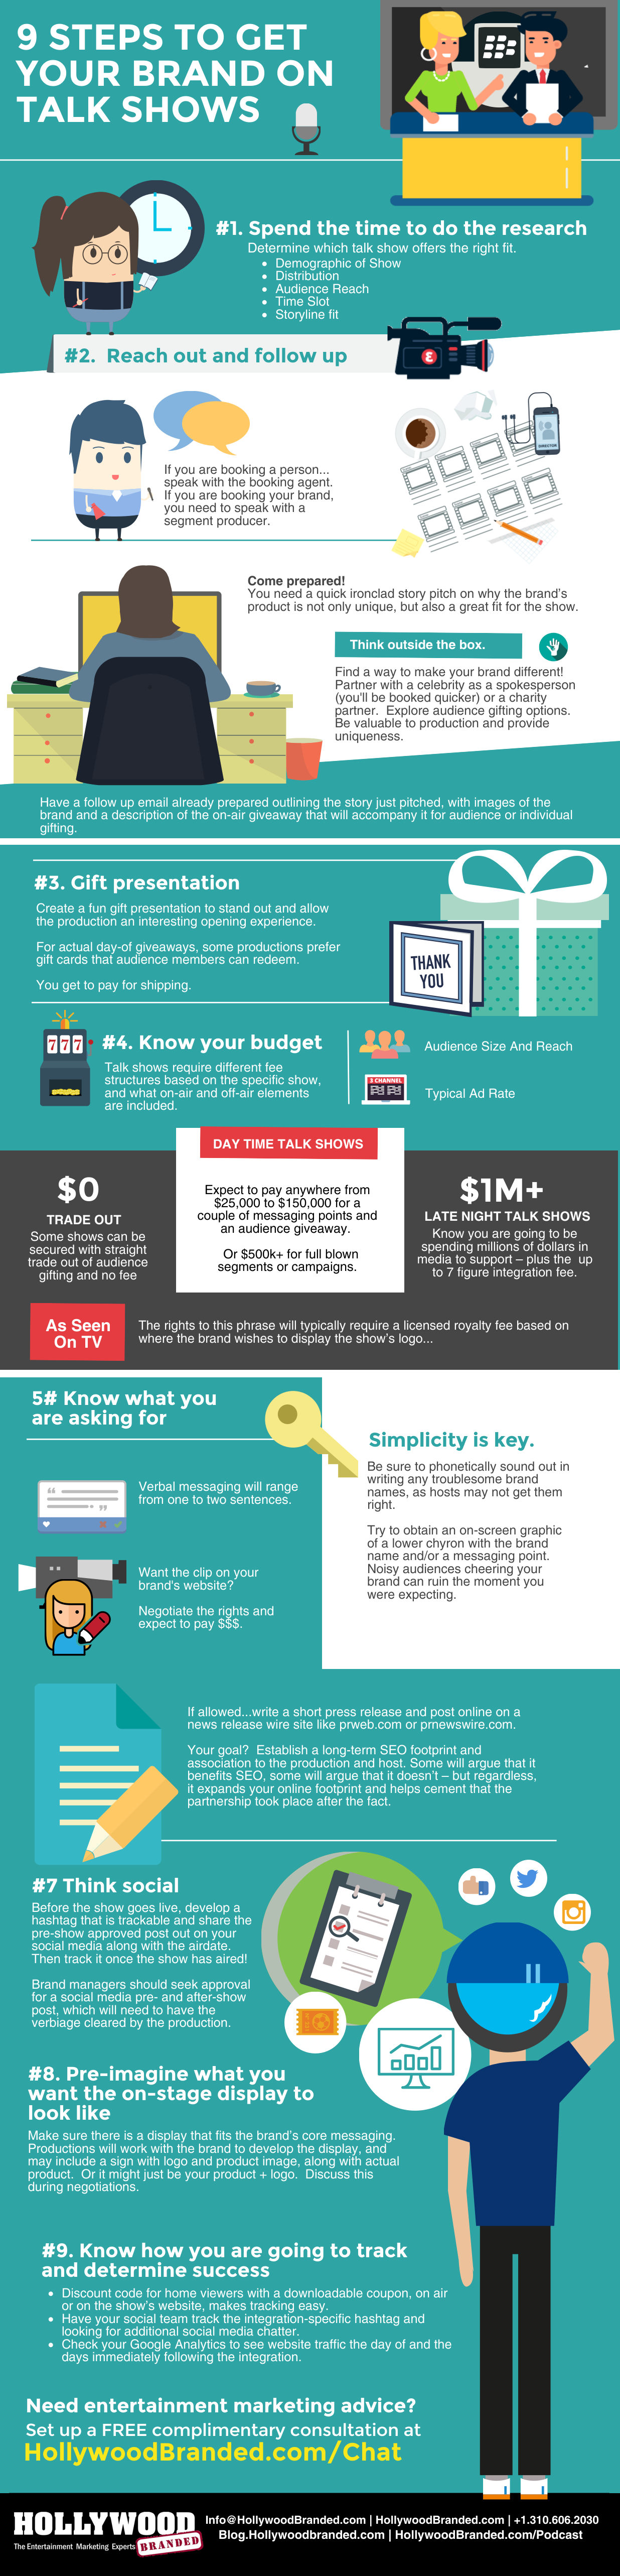 9 Way To Get Your Brand on A Talk Show Infographic Hollywood Branded i.png